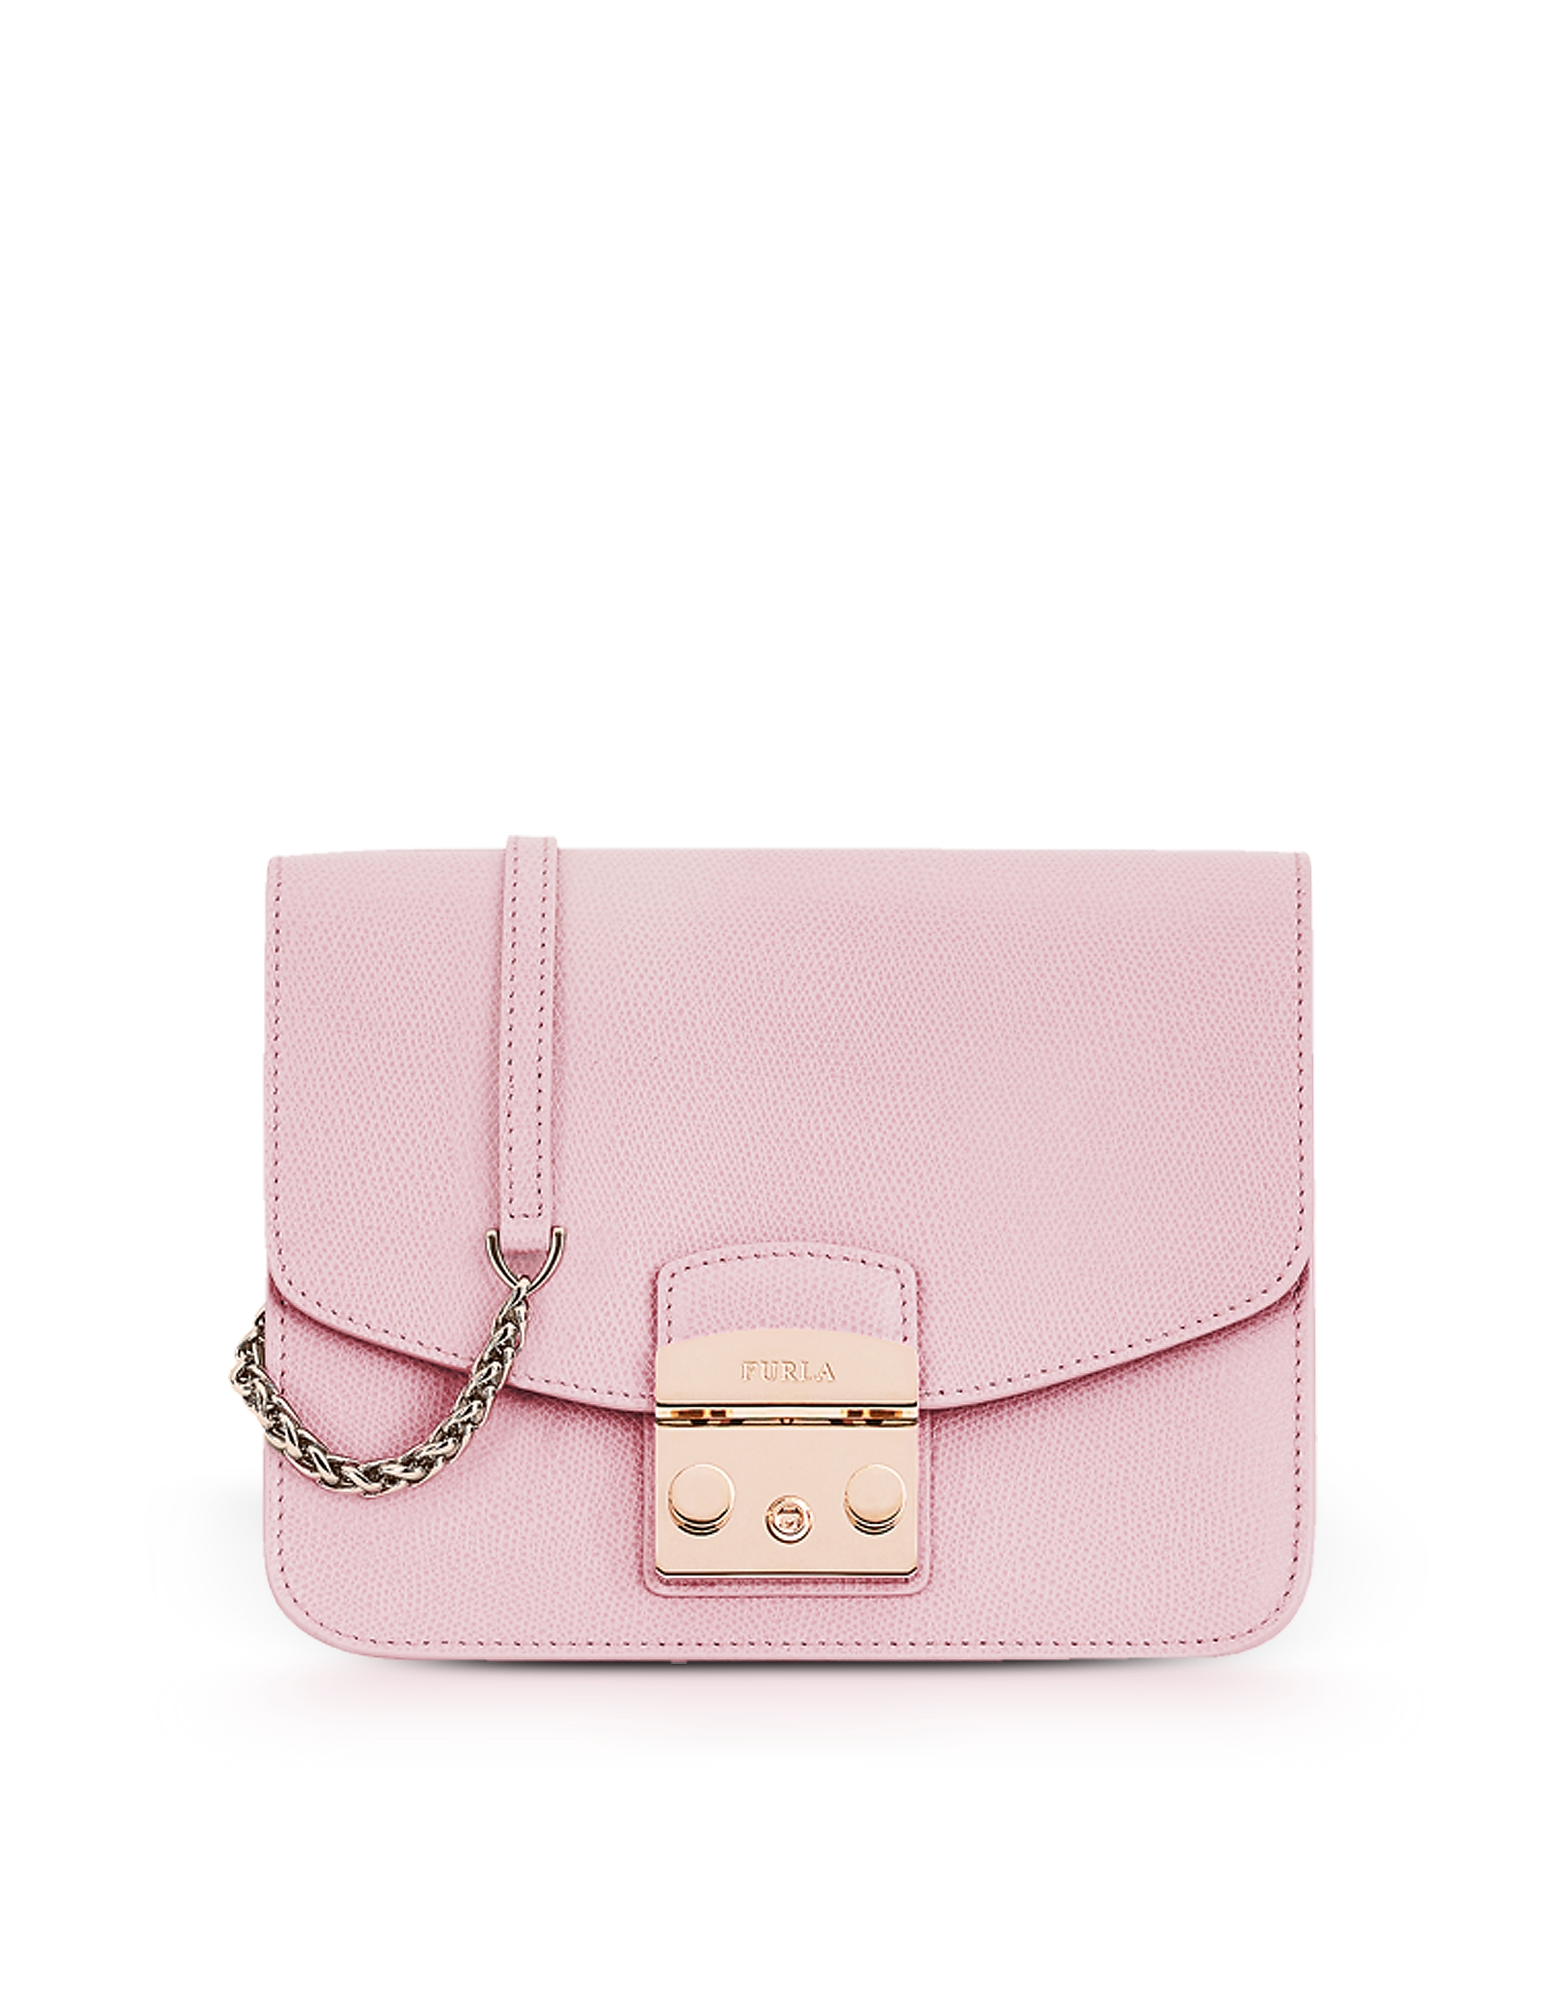 Furla Handbags, Camelia Pink Lizard Printed Leather Metropolis Small Crossbody Bag